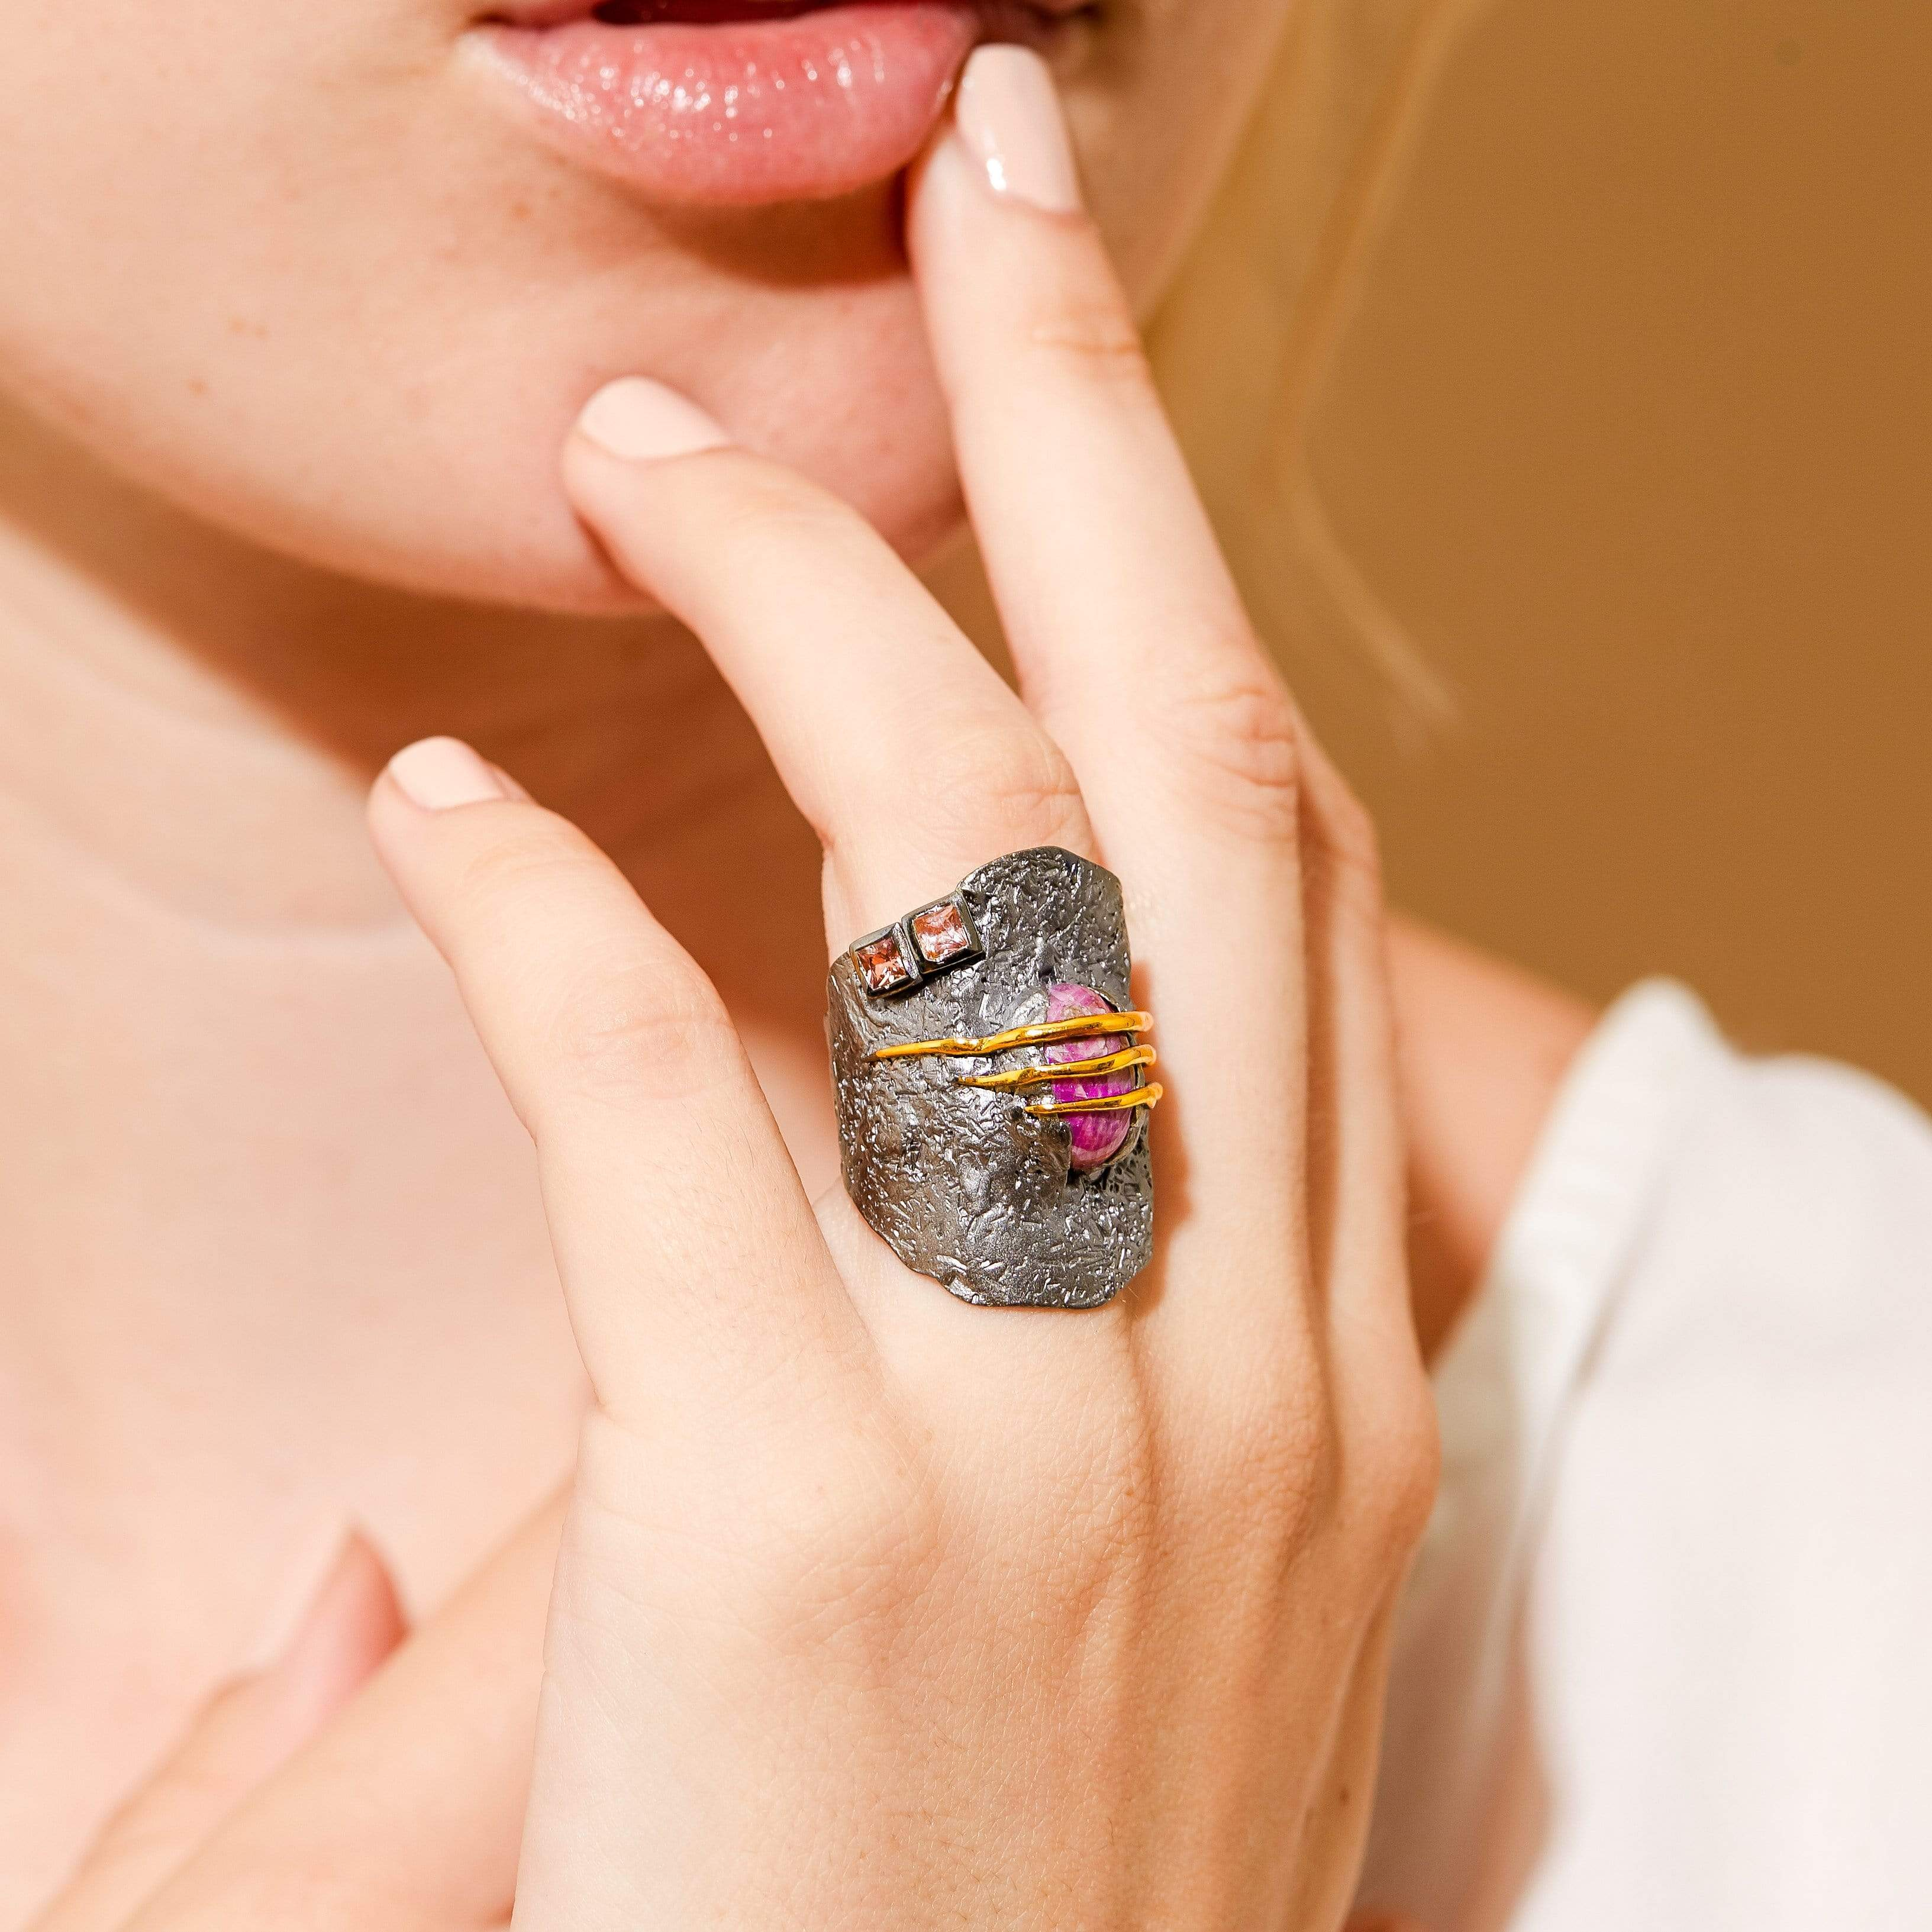 Searle Ring, Exclusive, Gold, gray, Rhodium, Ruby, Sapphire, spo-disabled, StoneColor:Pink, Style:Everyday, Type:StoneCandyWired Ring